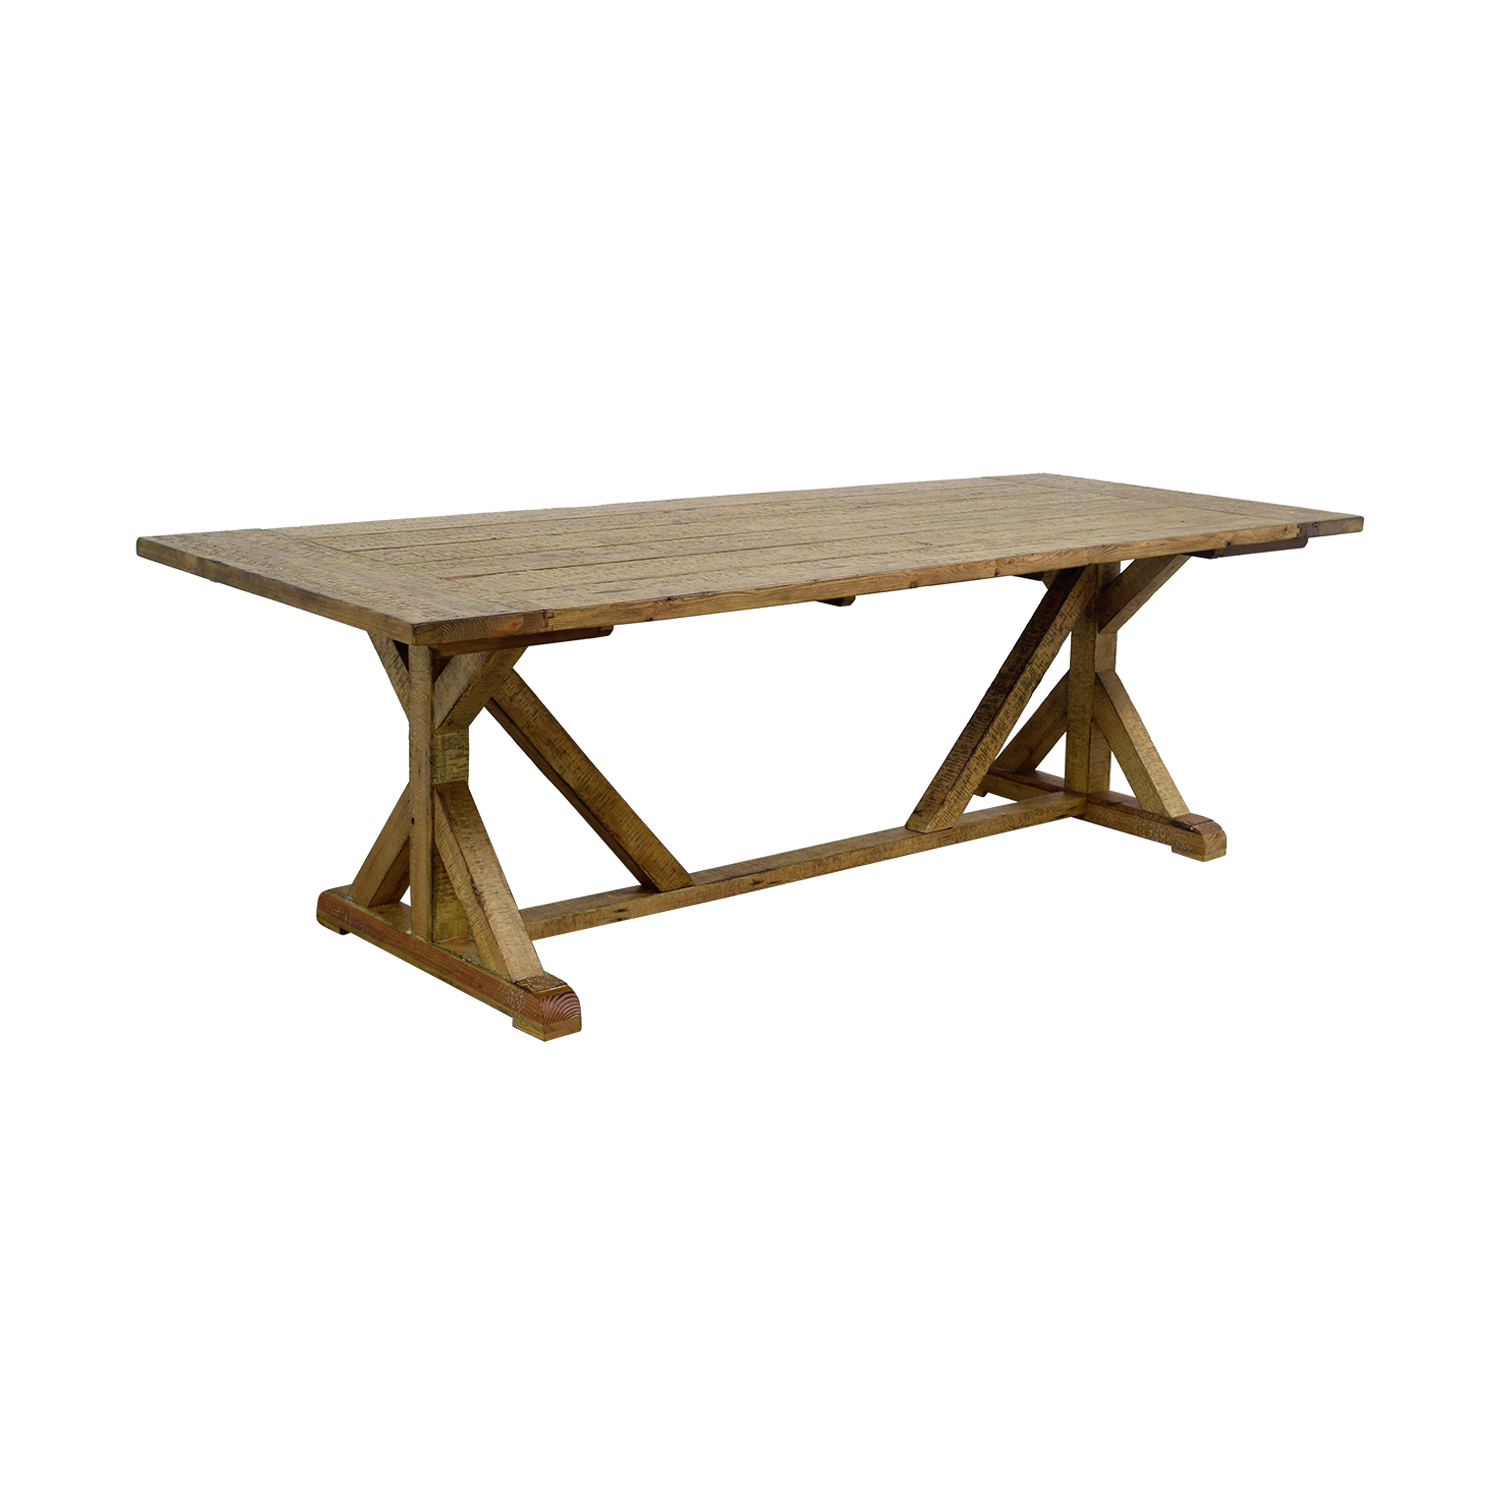 34 off inspire q inspire q paloma rustic reclaimed wood for Rustic trestle dining table